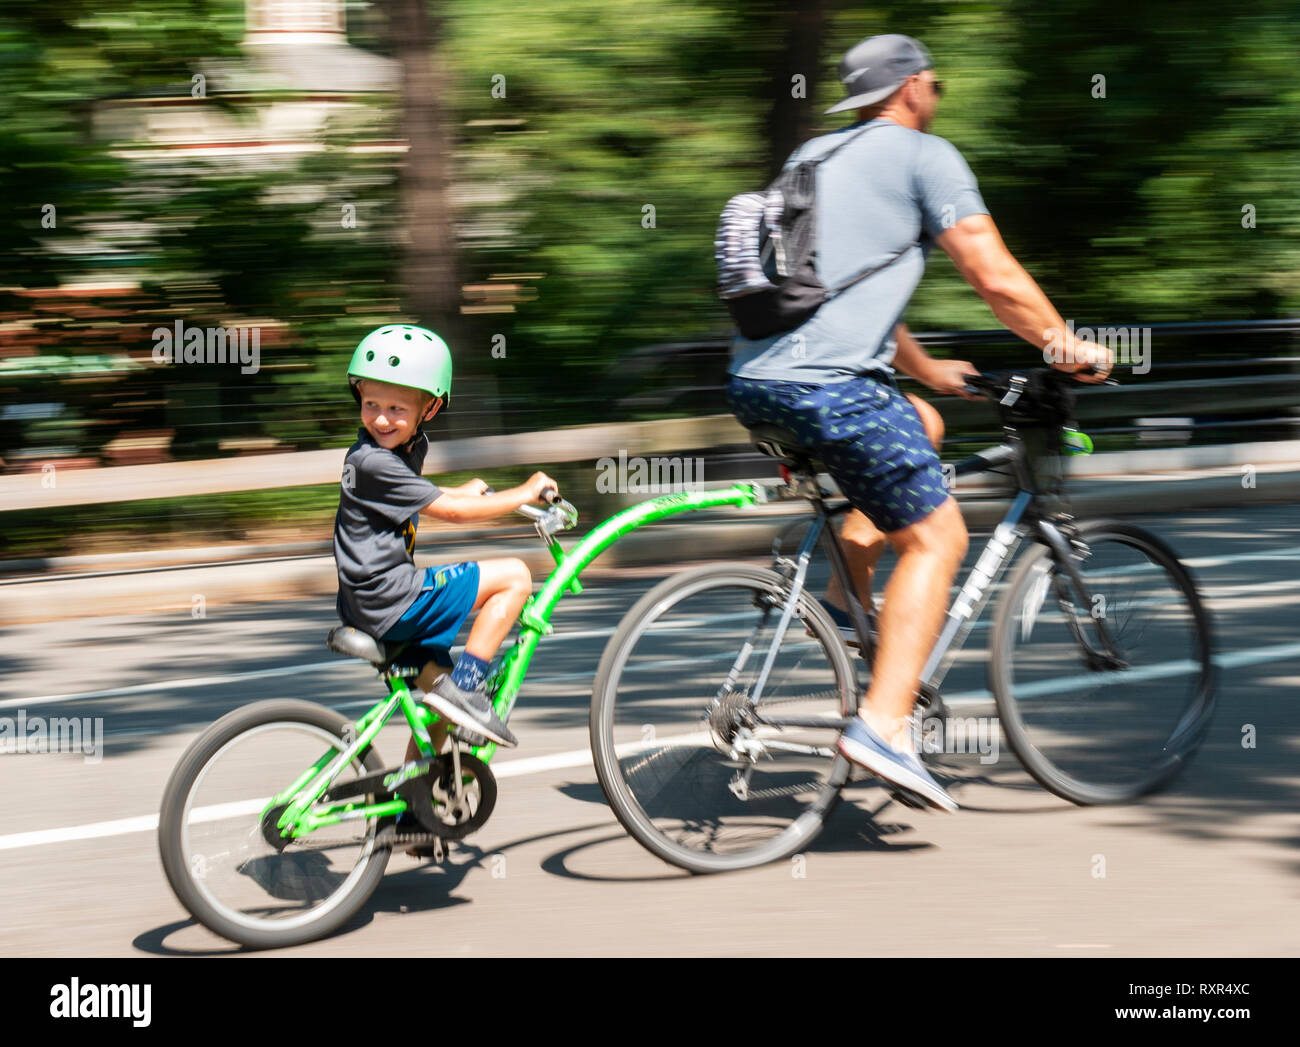 New York City, USA - 15 August 2018: Father and son riding a bike with an attachment on the back in central park with a blurred background. - Stock Image